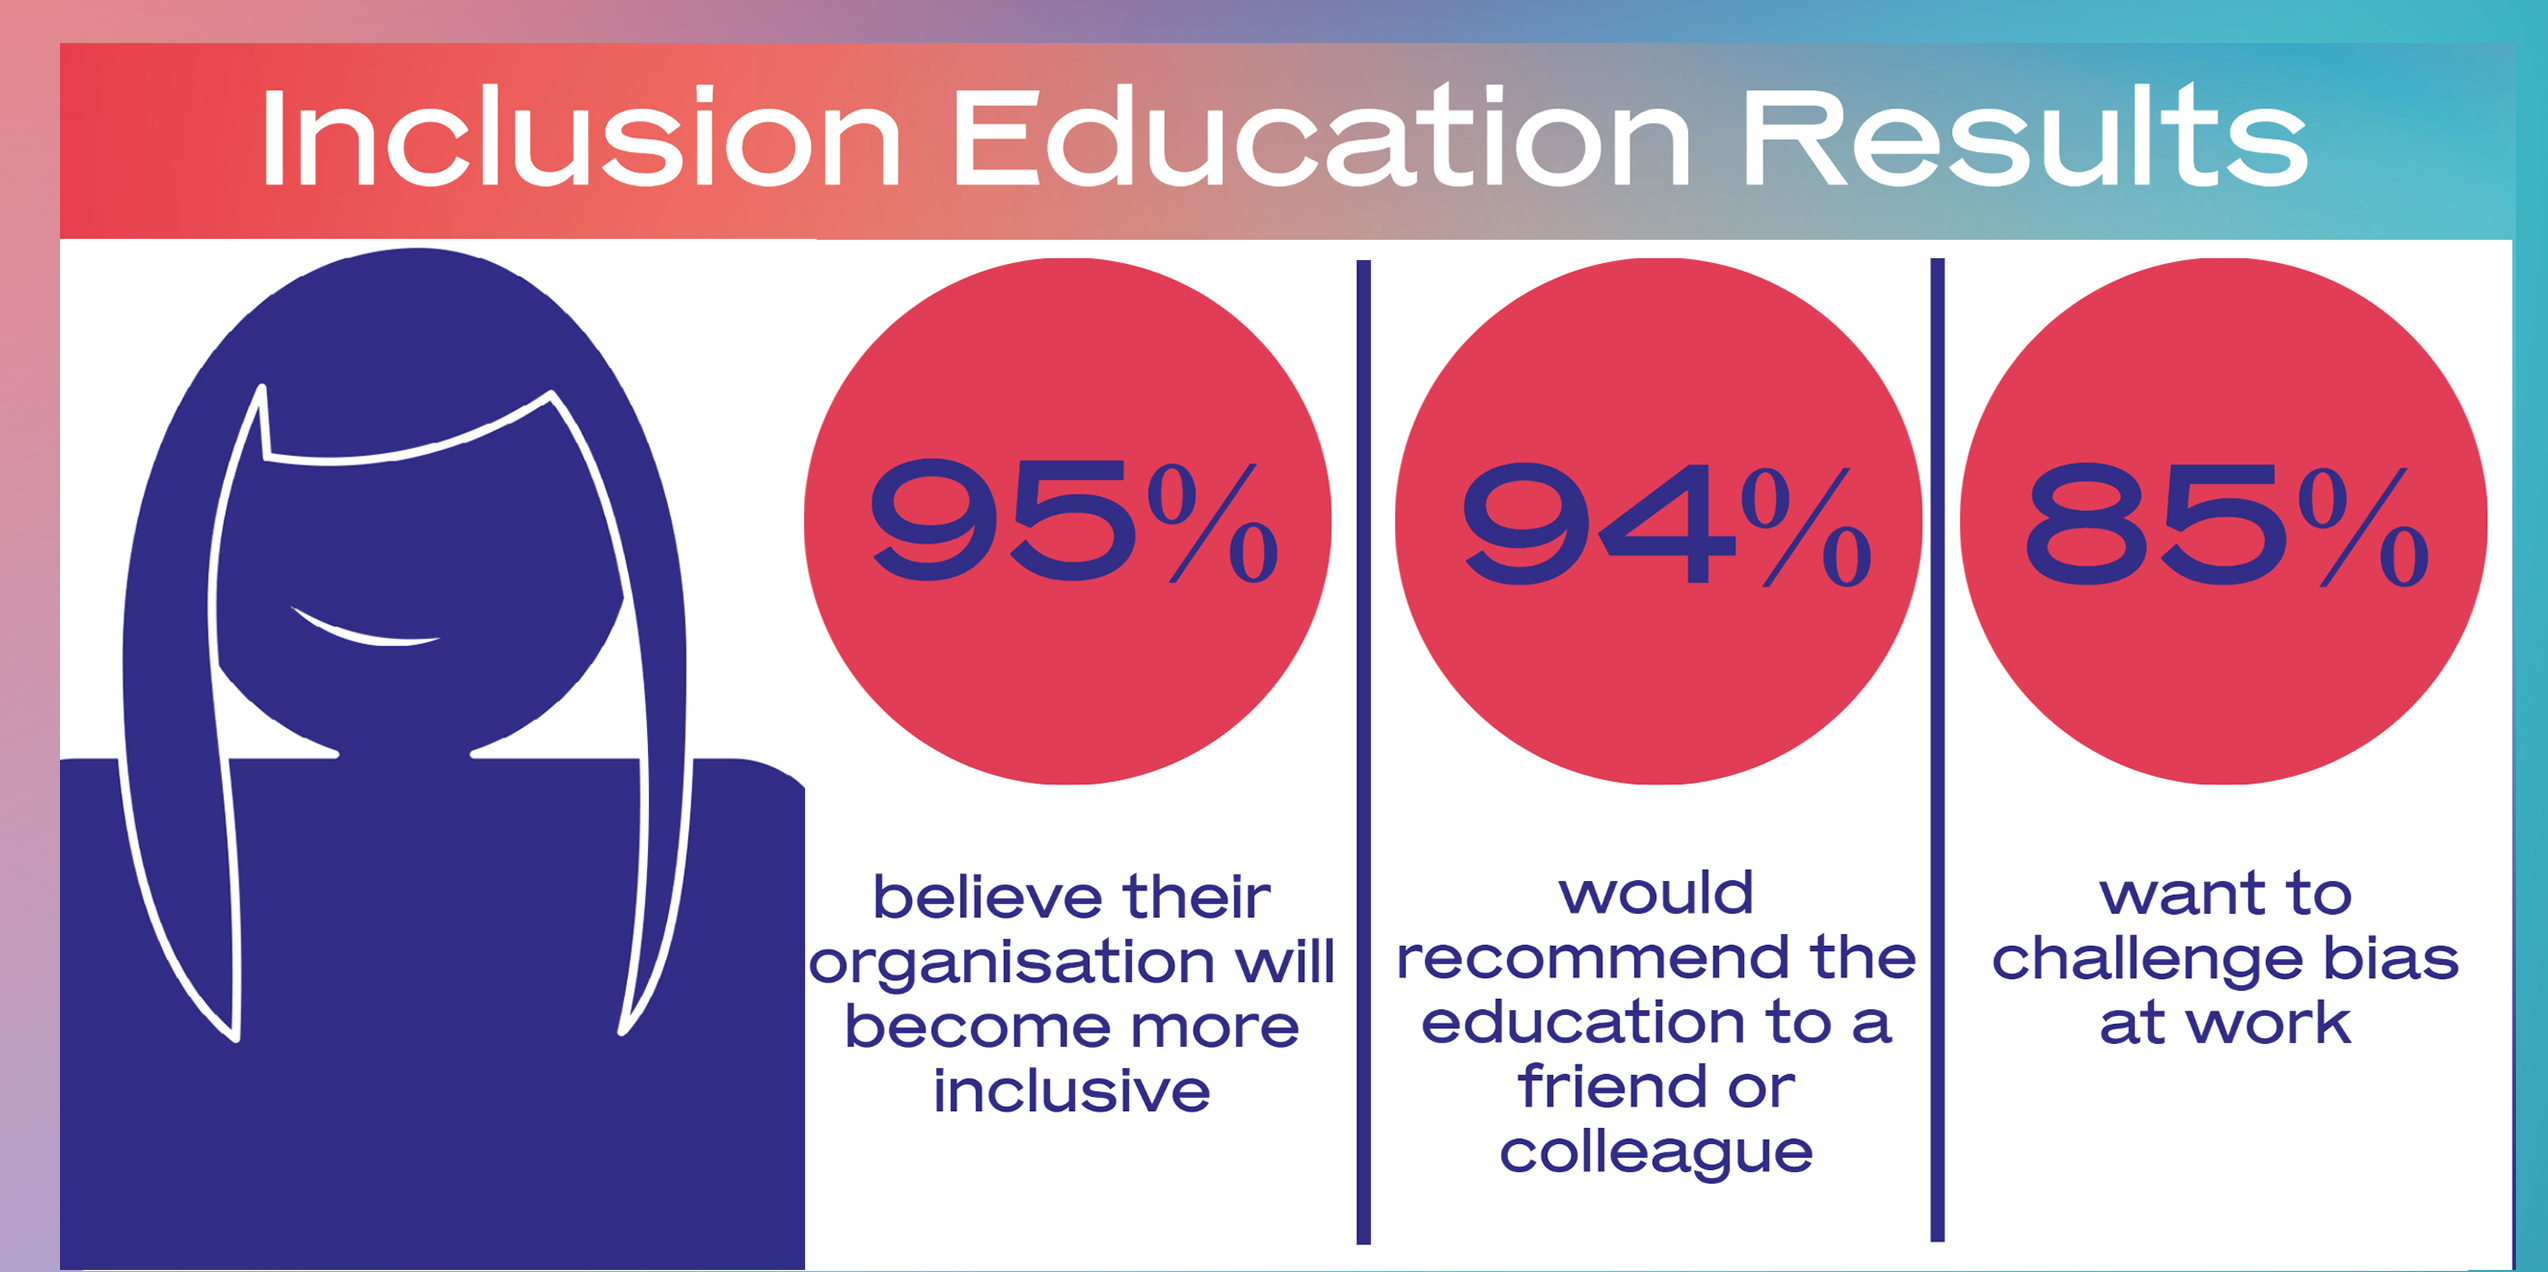 Inclusion Education Results